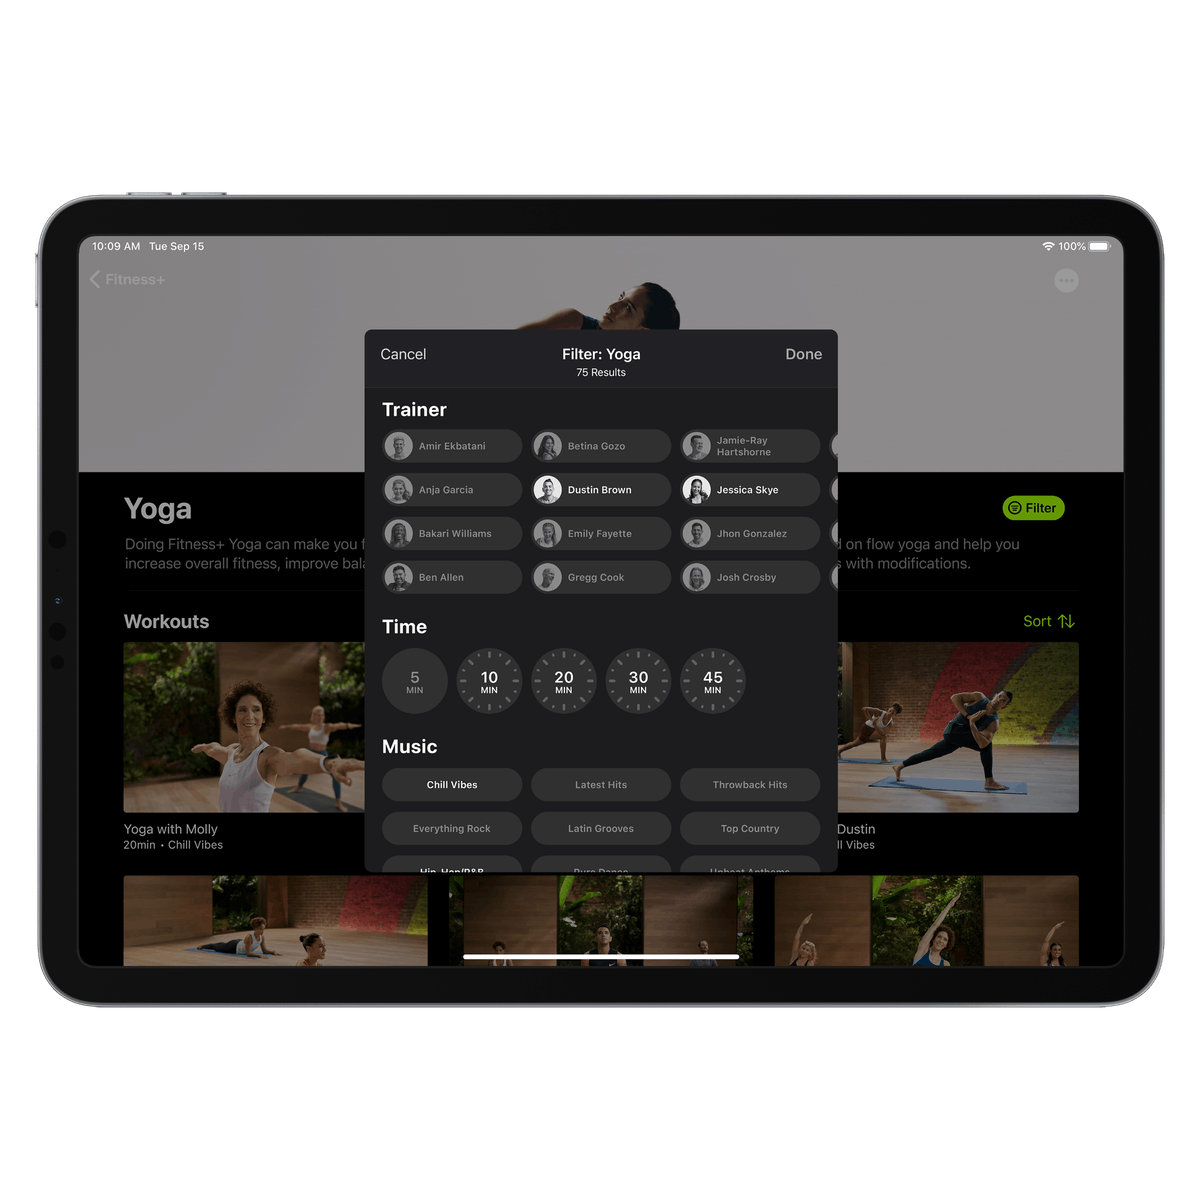 Apple's Fitness+ service let's you curate your perfect workout.